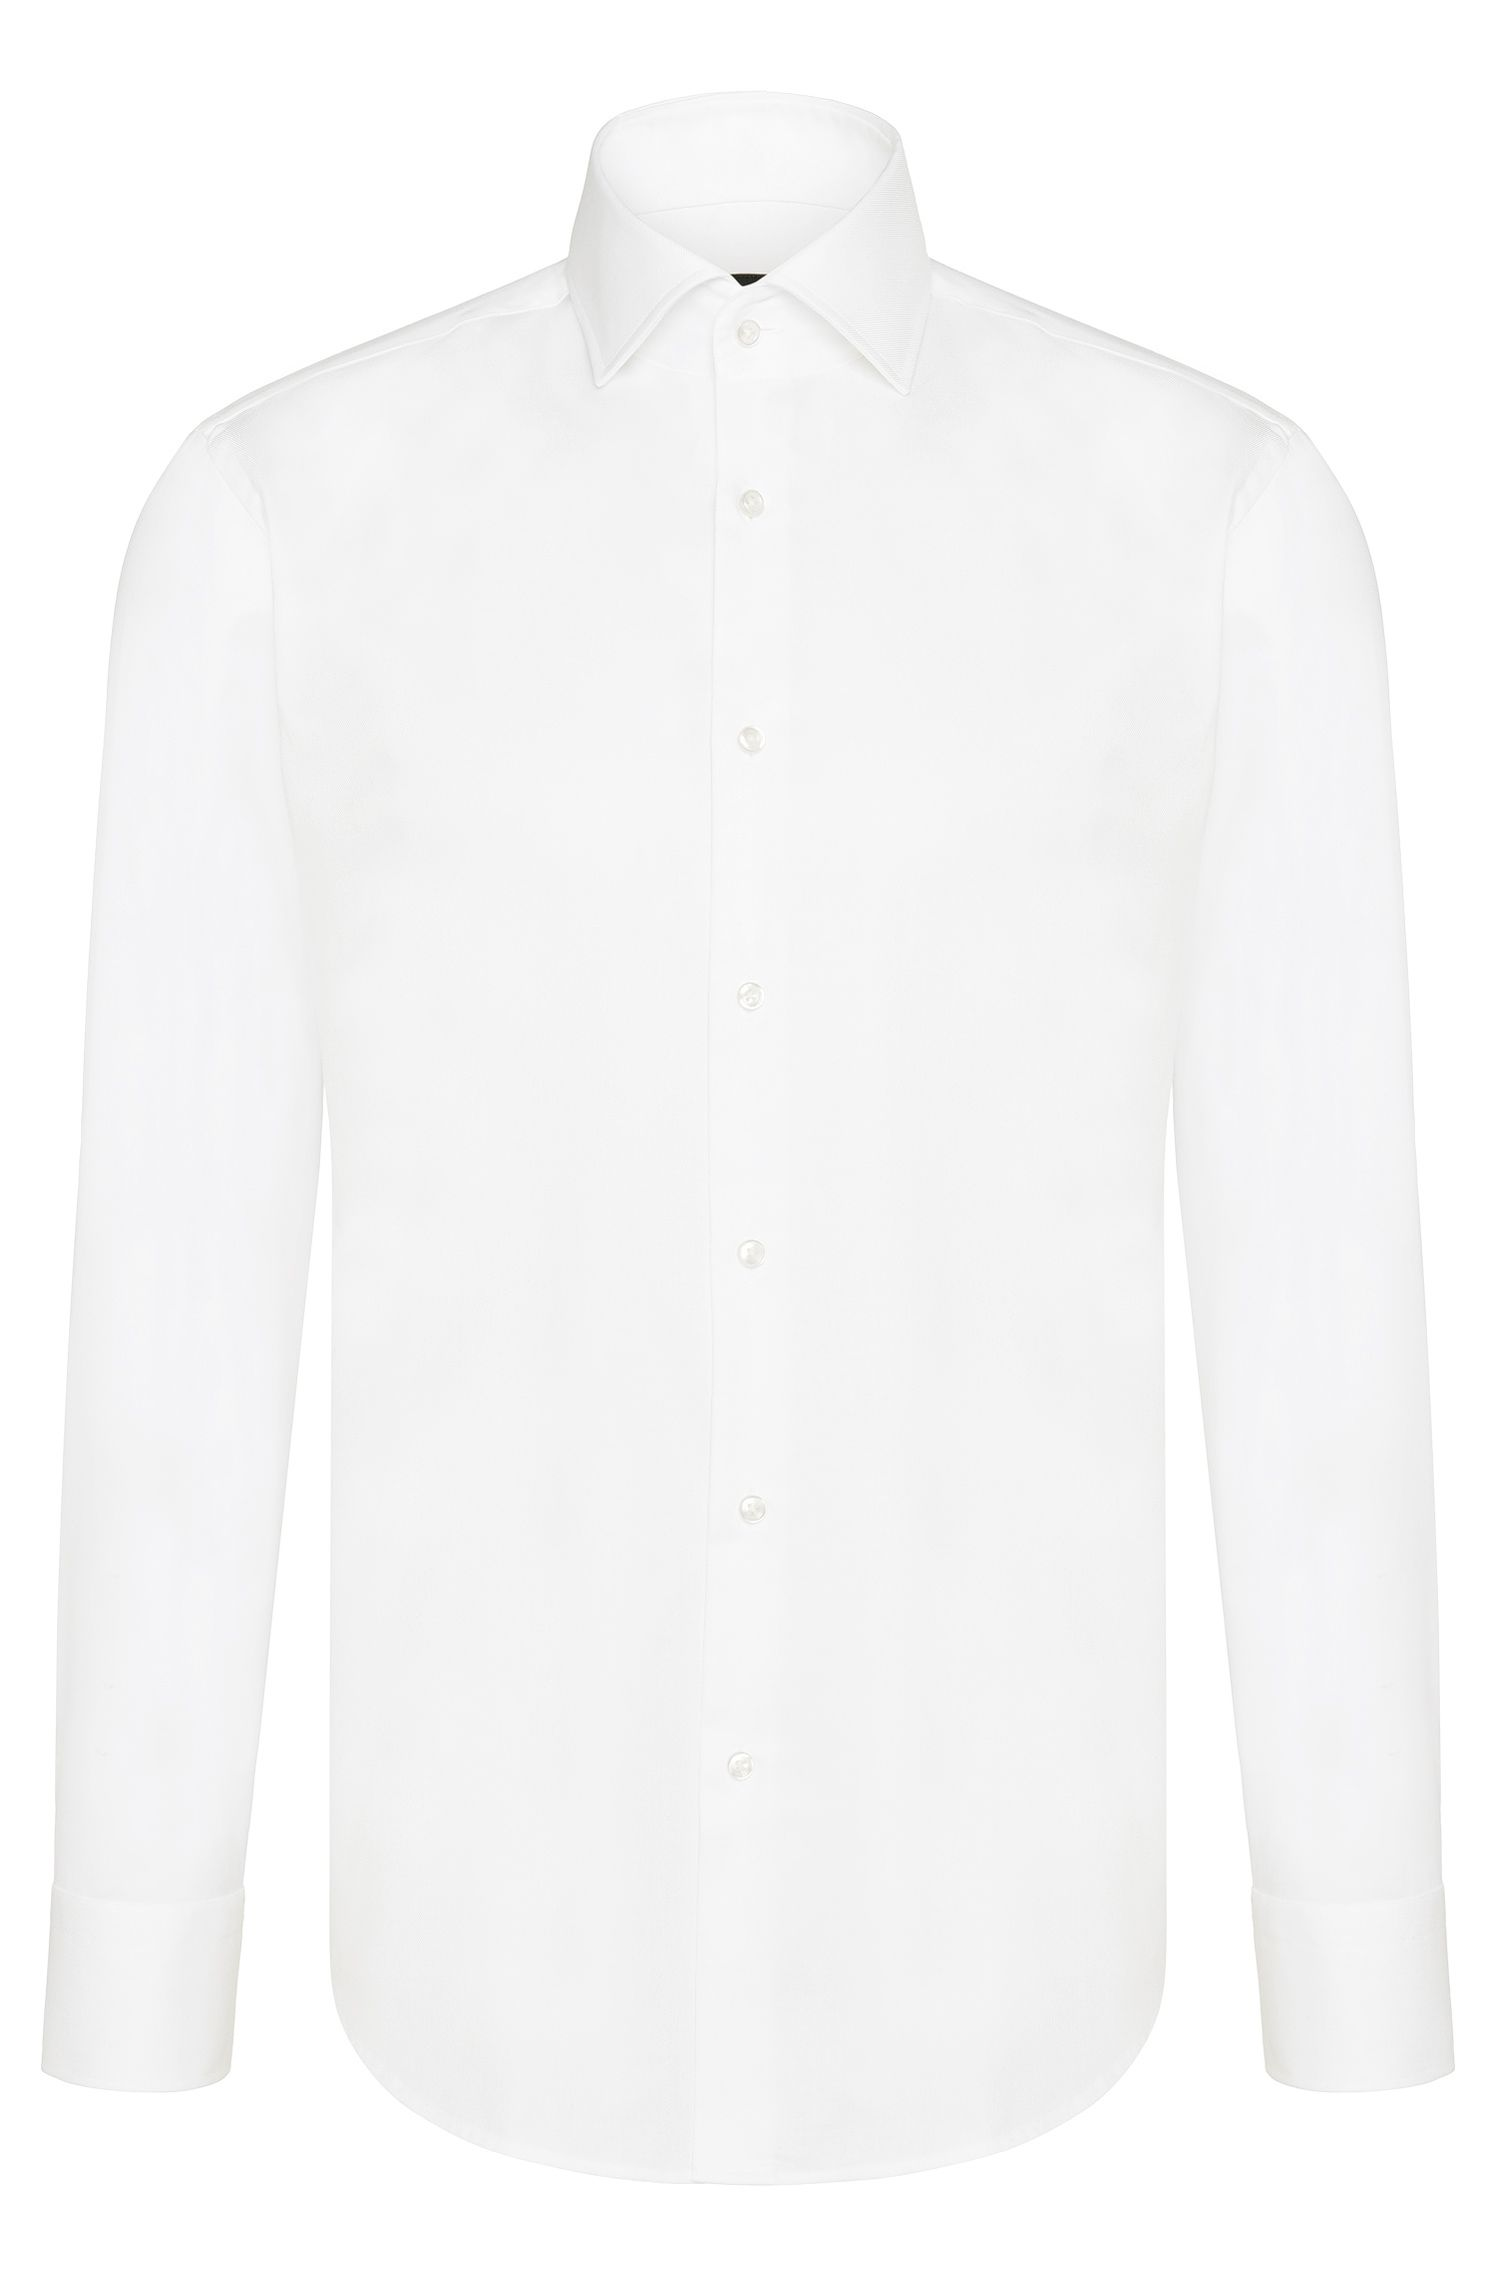 'Gerald' | Regular Fit, Spread Collar Cotton Dress Shirt